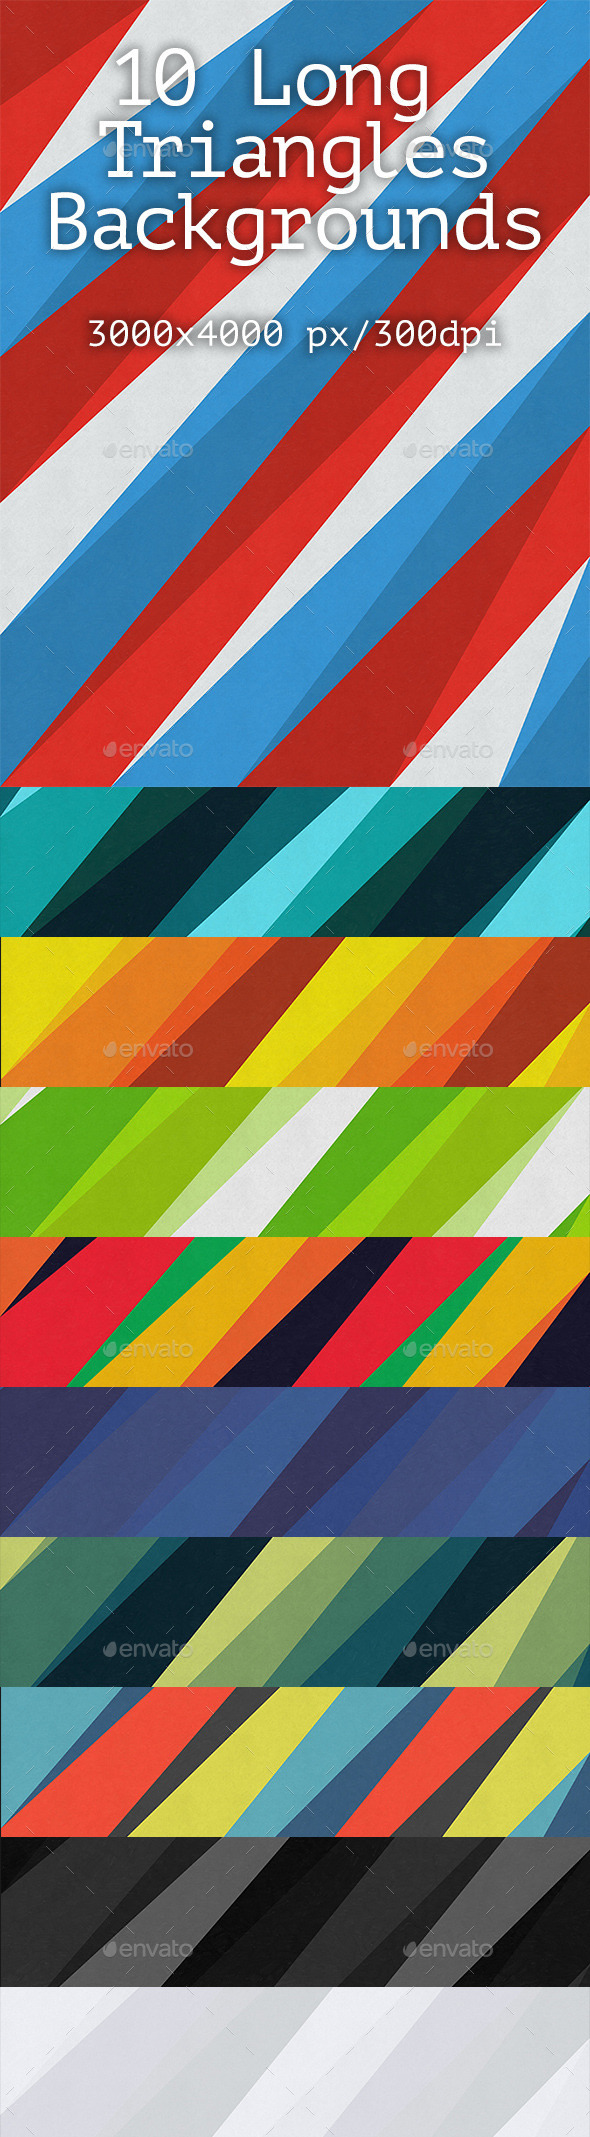 10 Long Triangles Backgrounds - Abstract Backgrounds